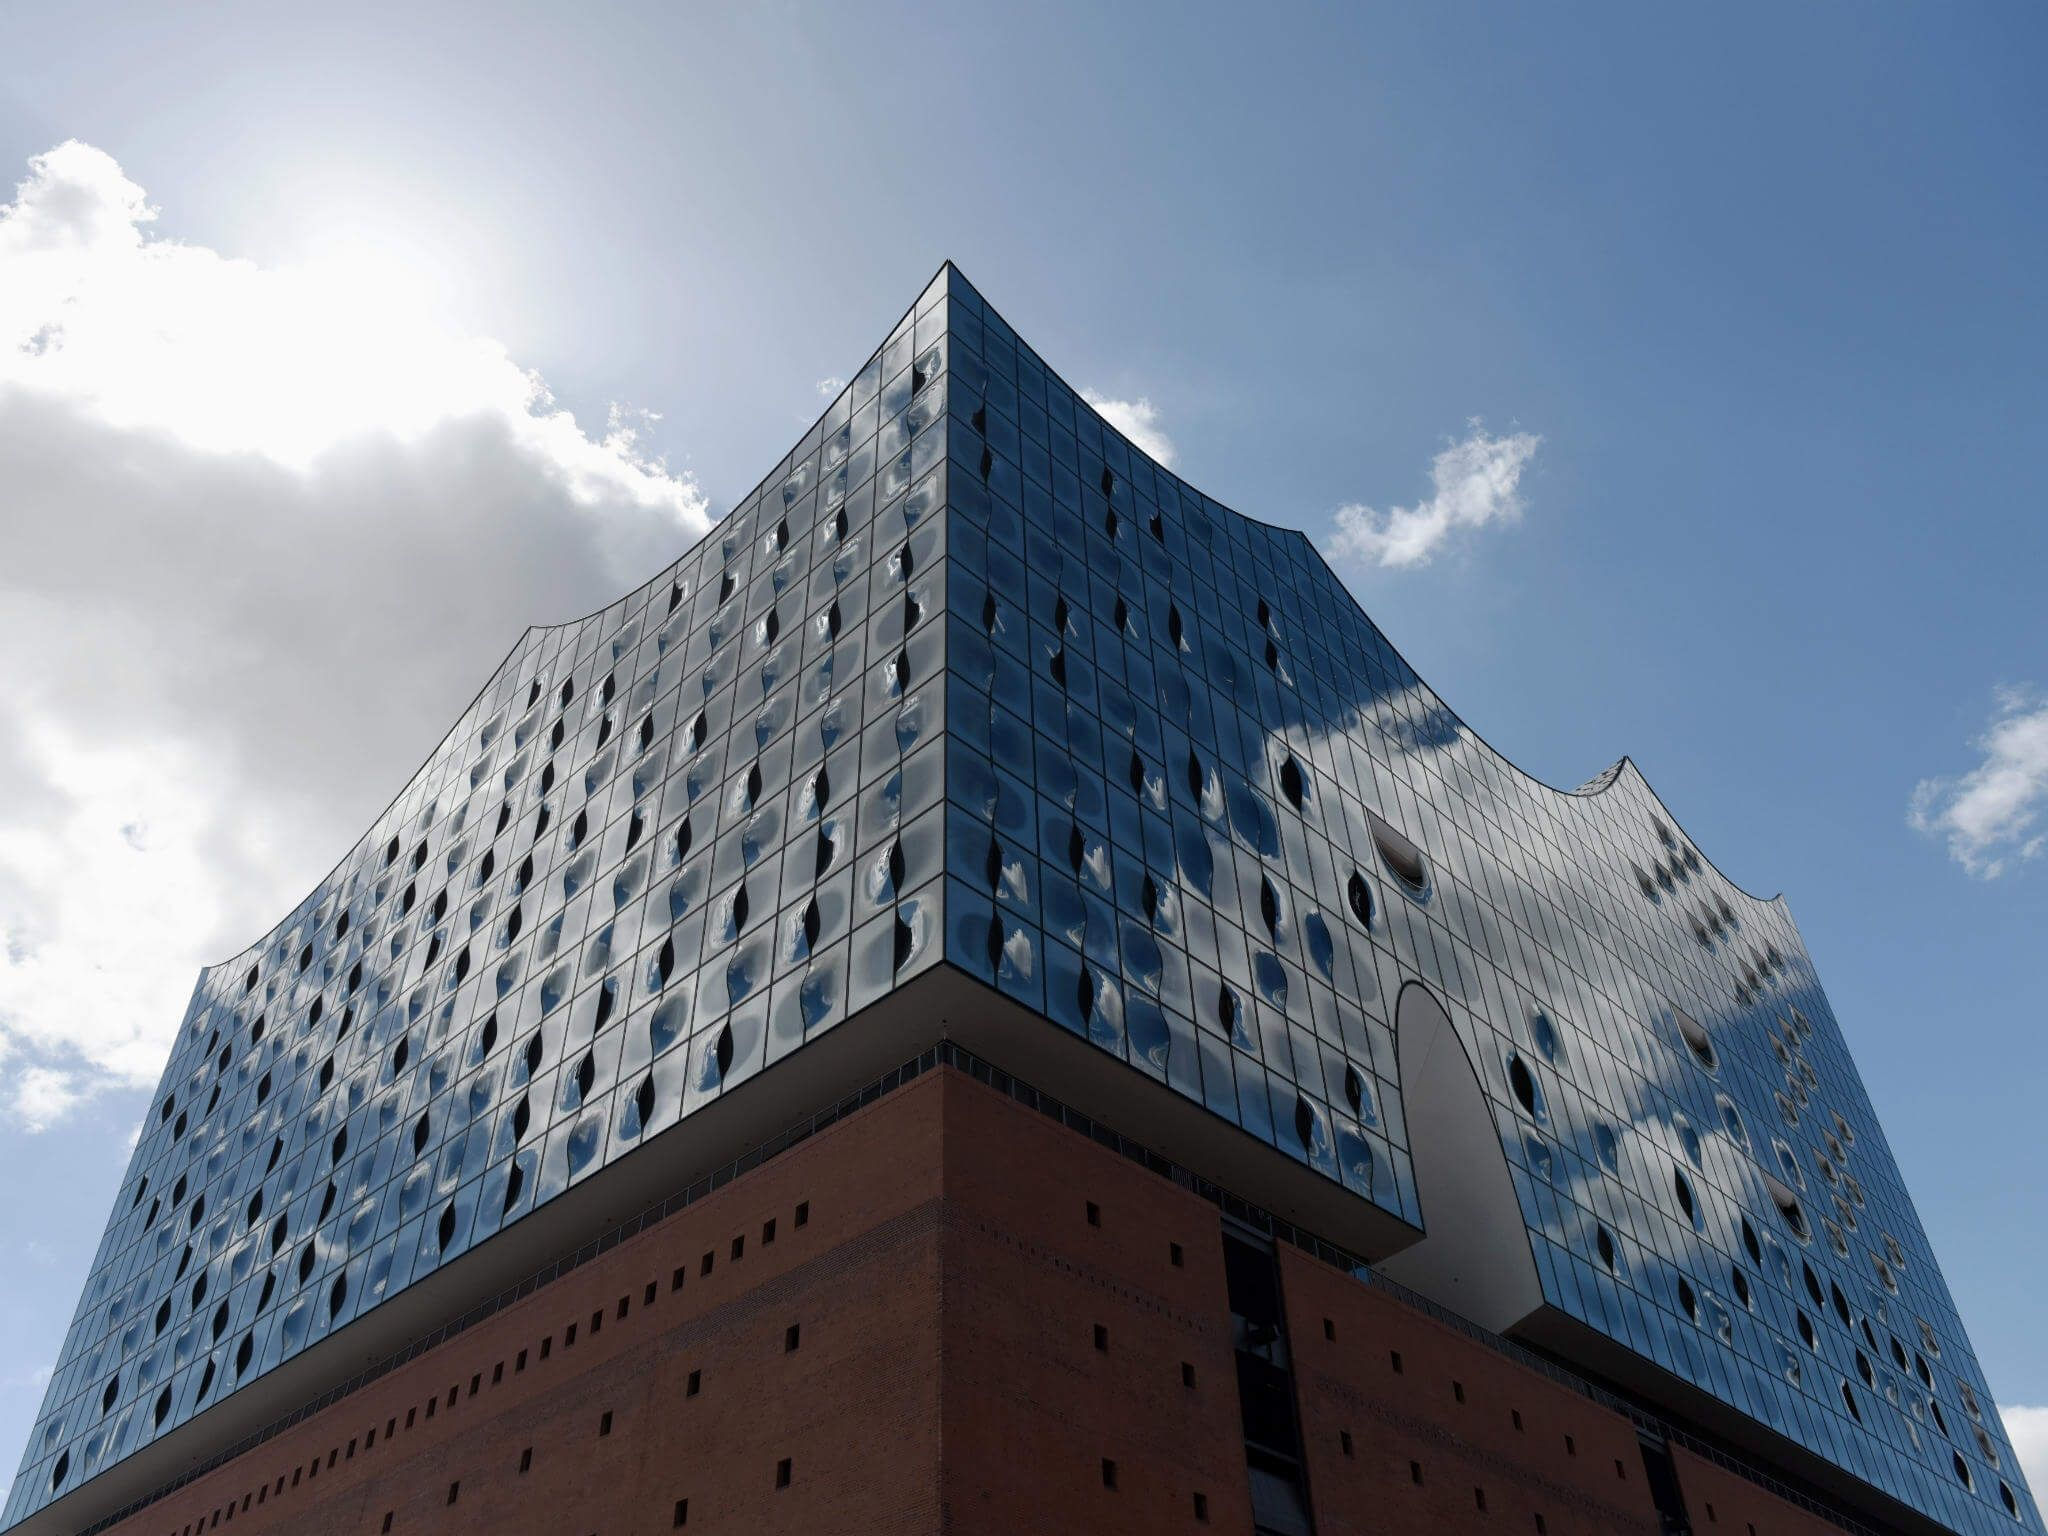 The Westin Hamburg, Luxushotel in der HafenCity